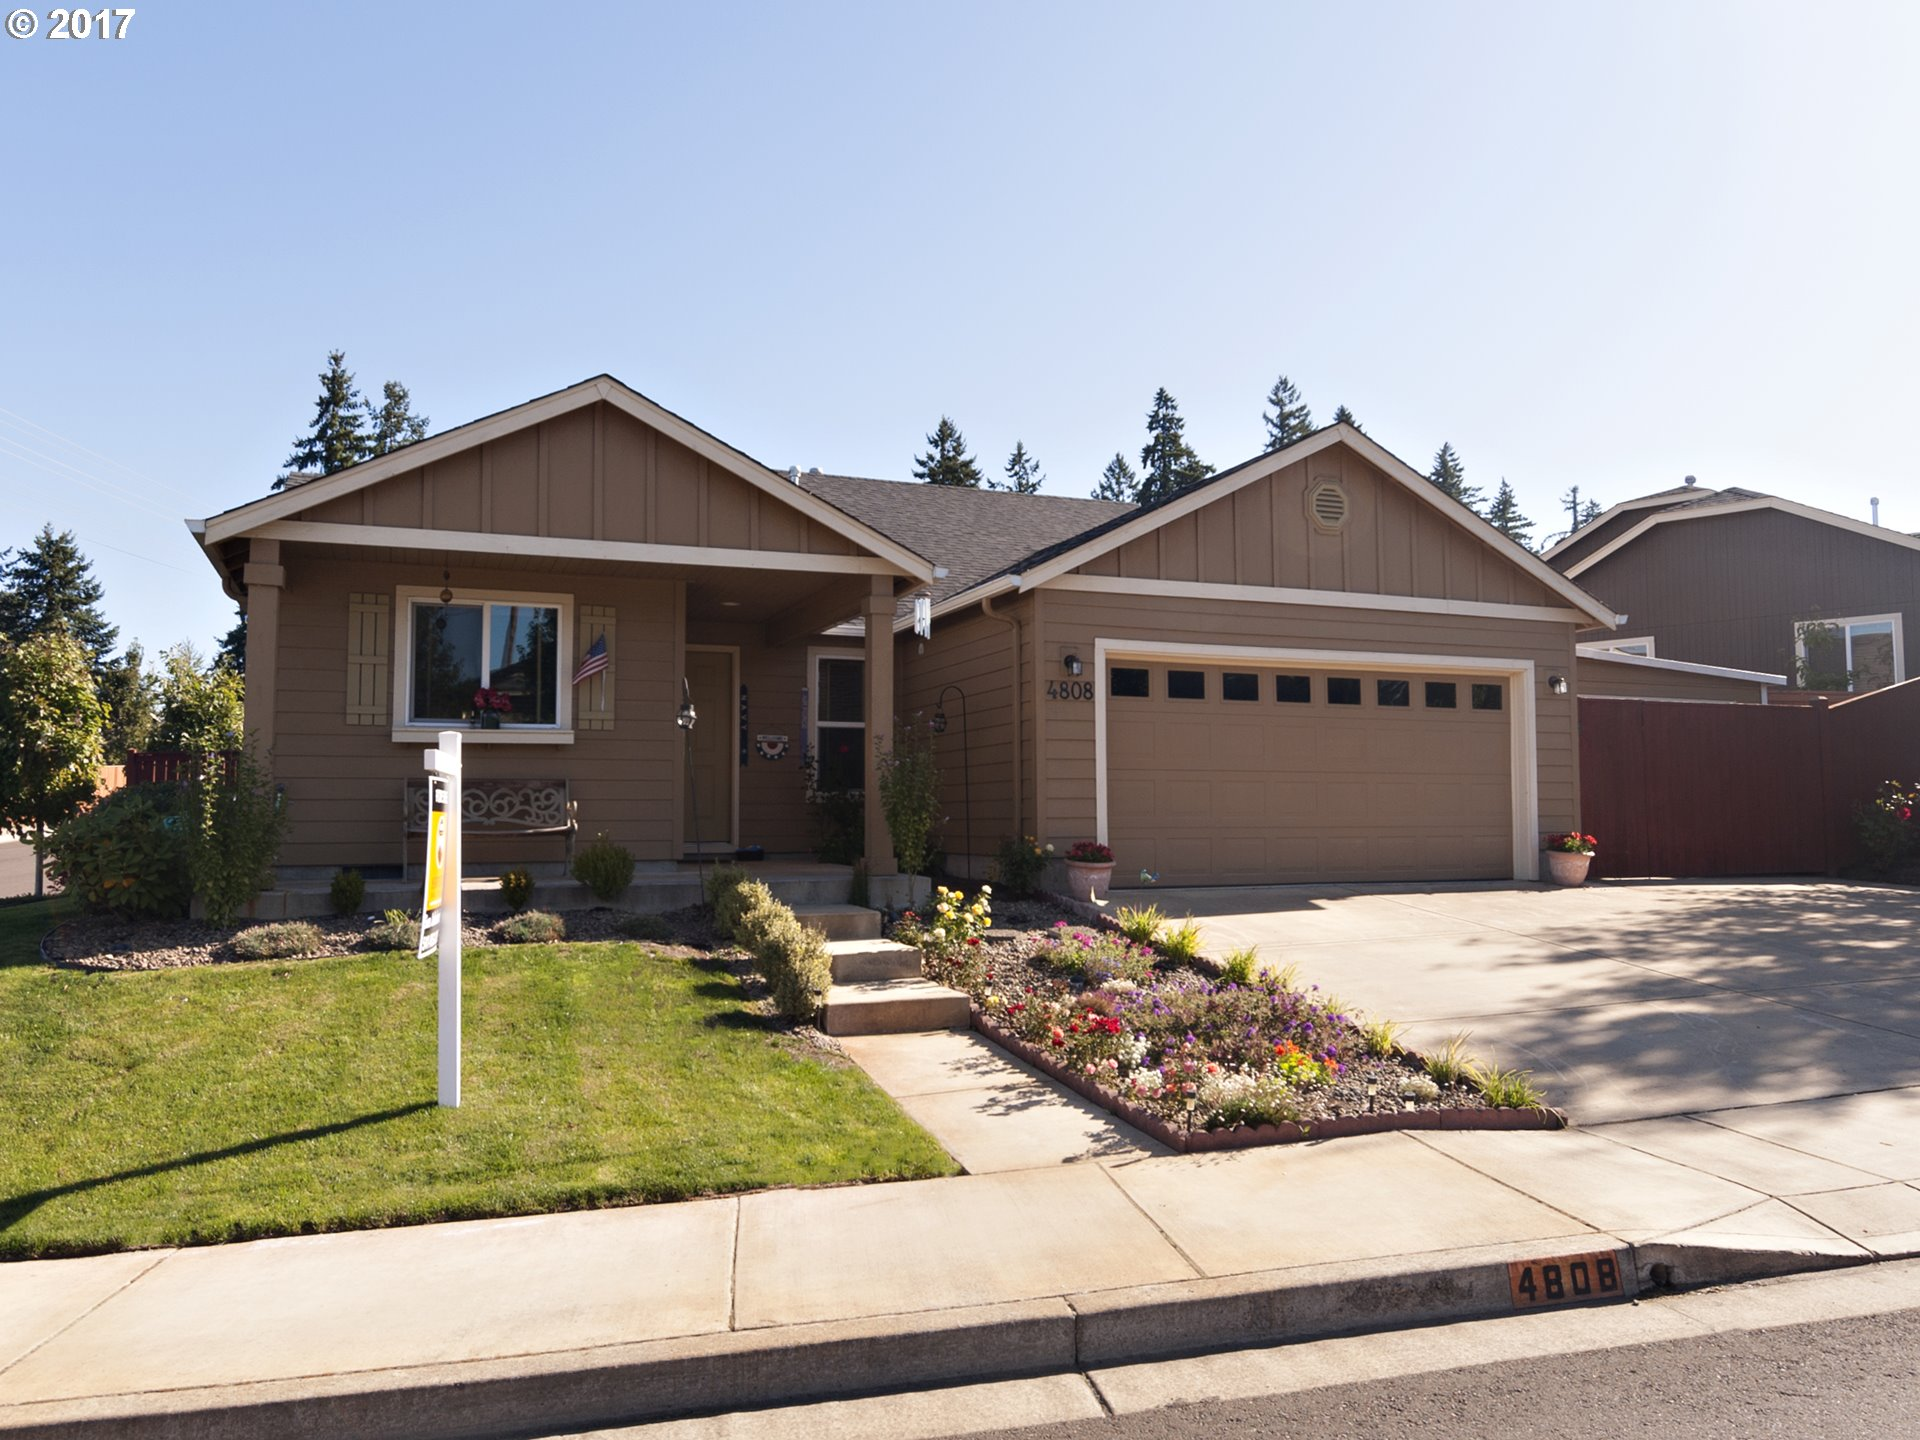 4808 HOLLY ST, Springfield OR 97478